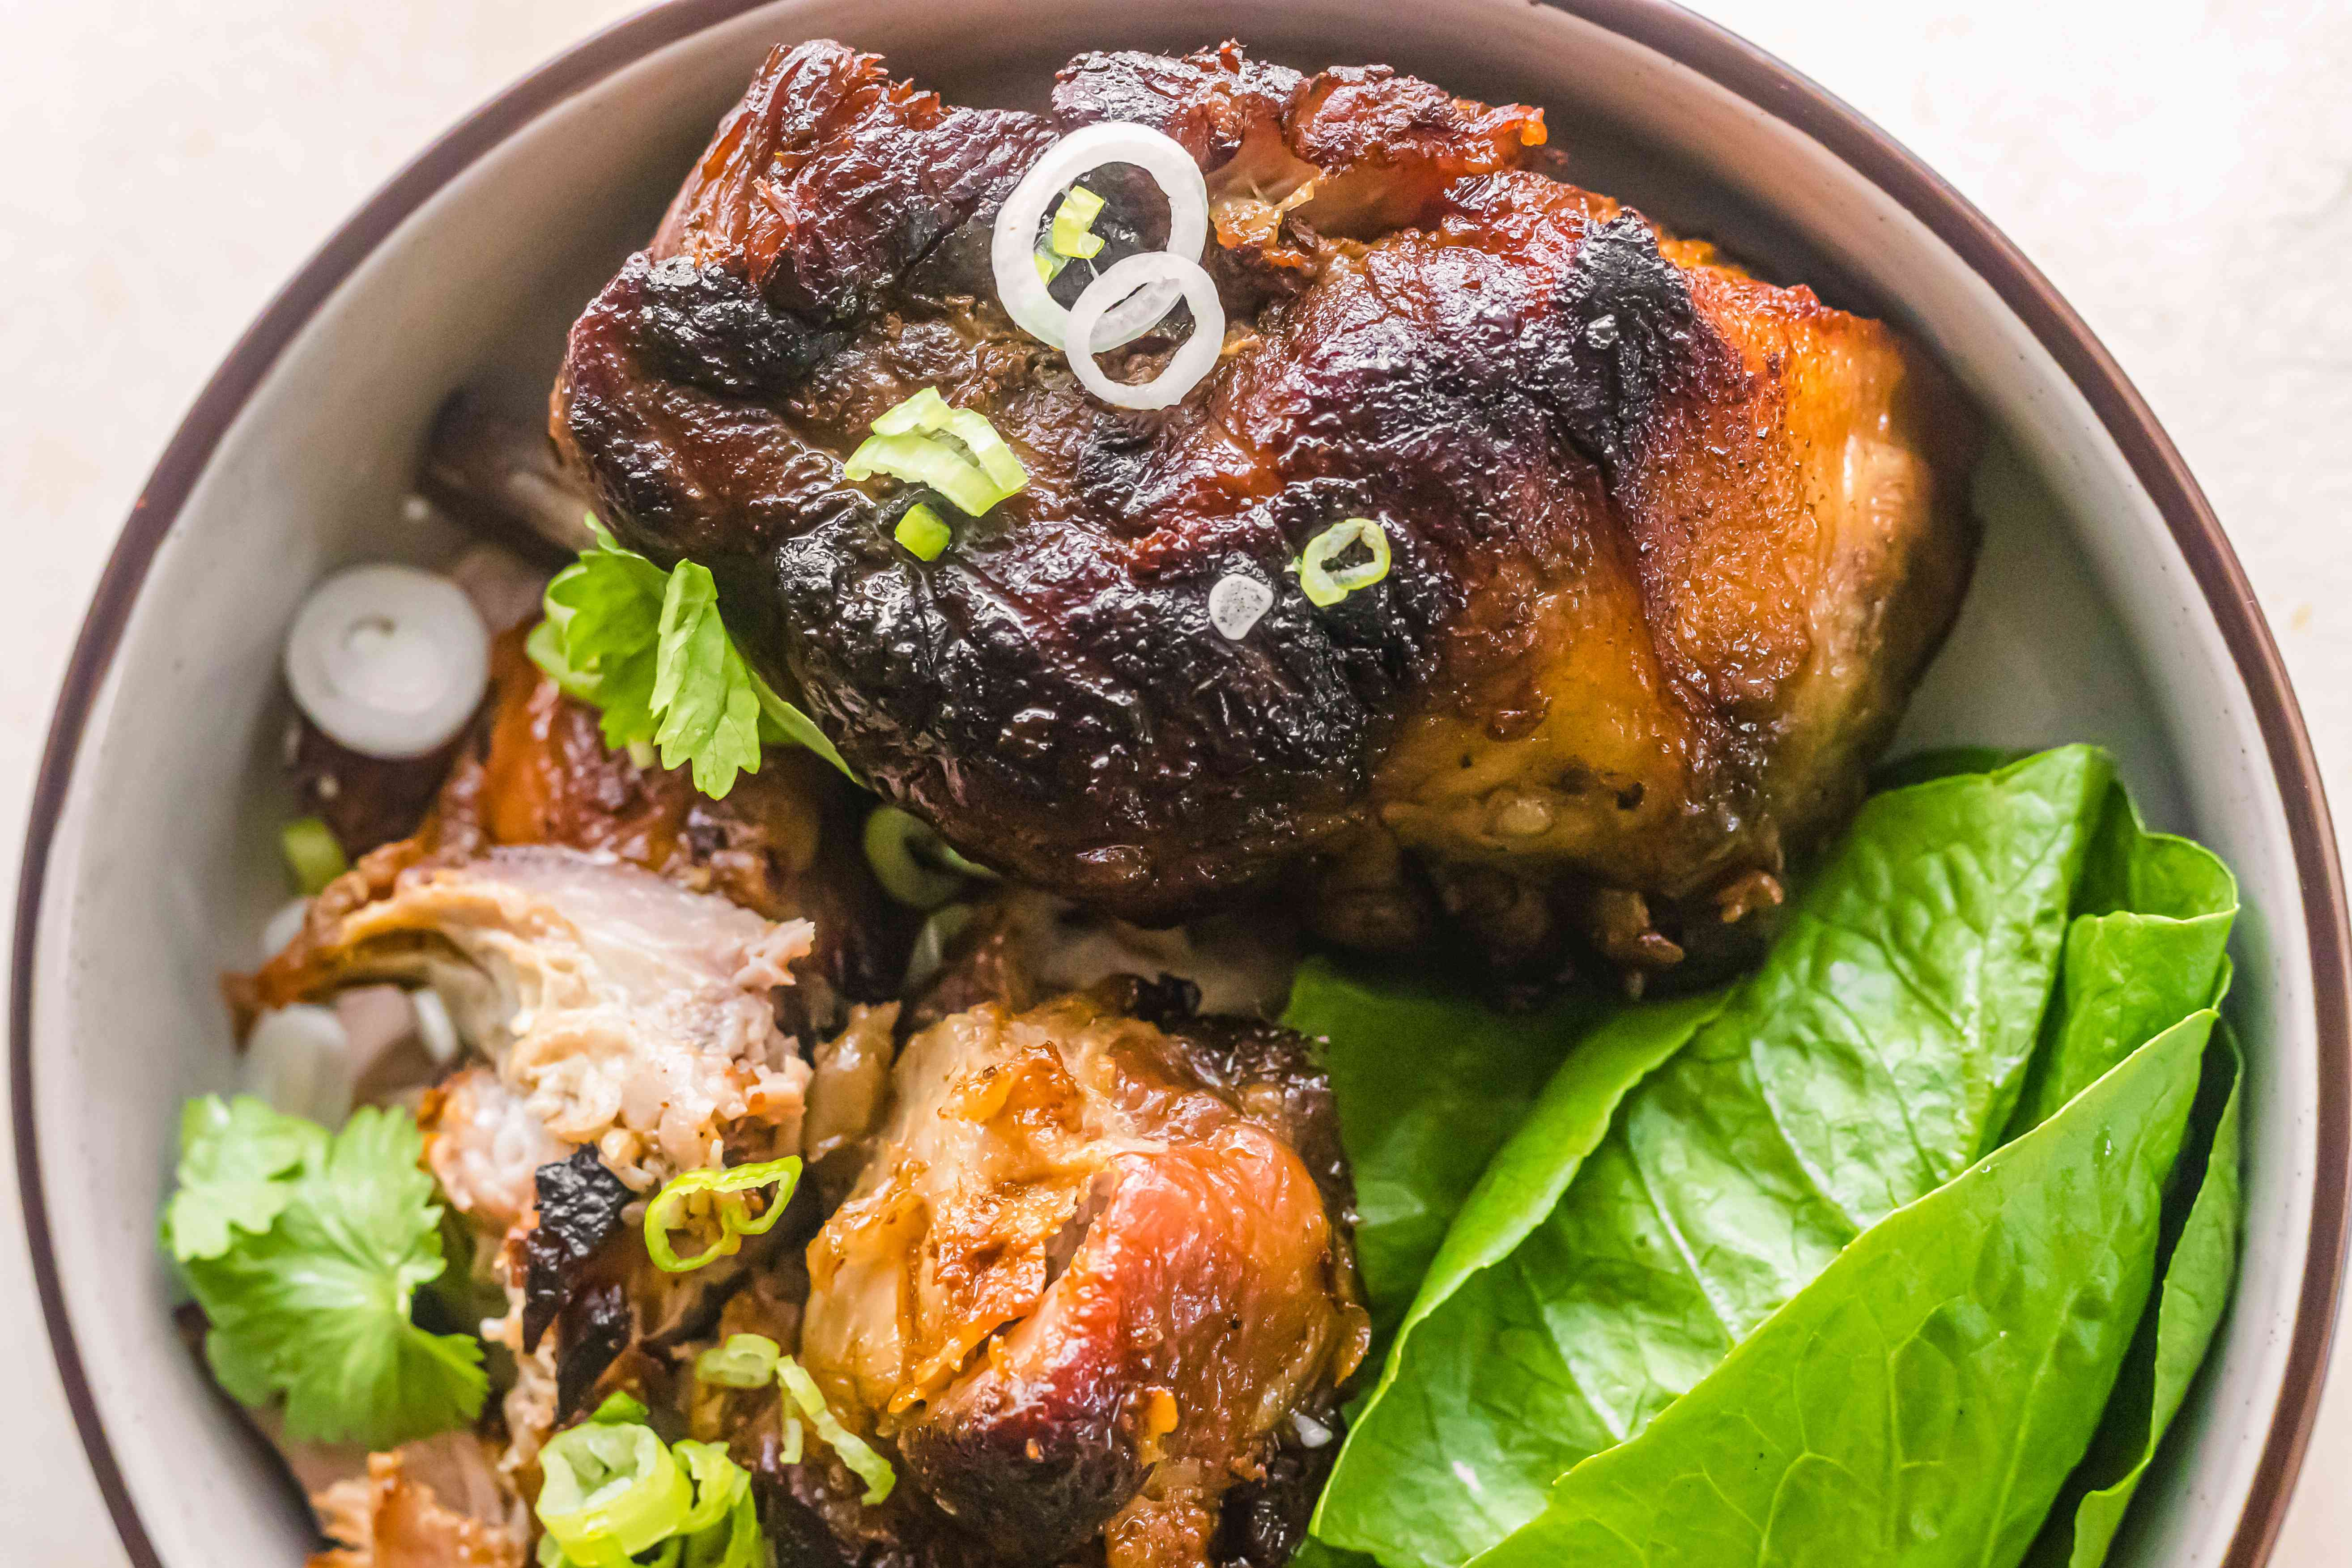 Roasted hunk of meat in a dutch oven with lettuce